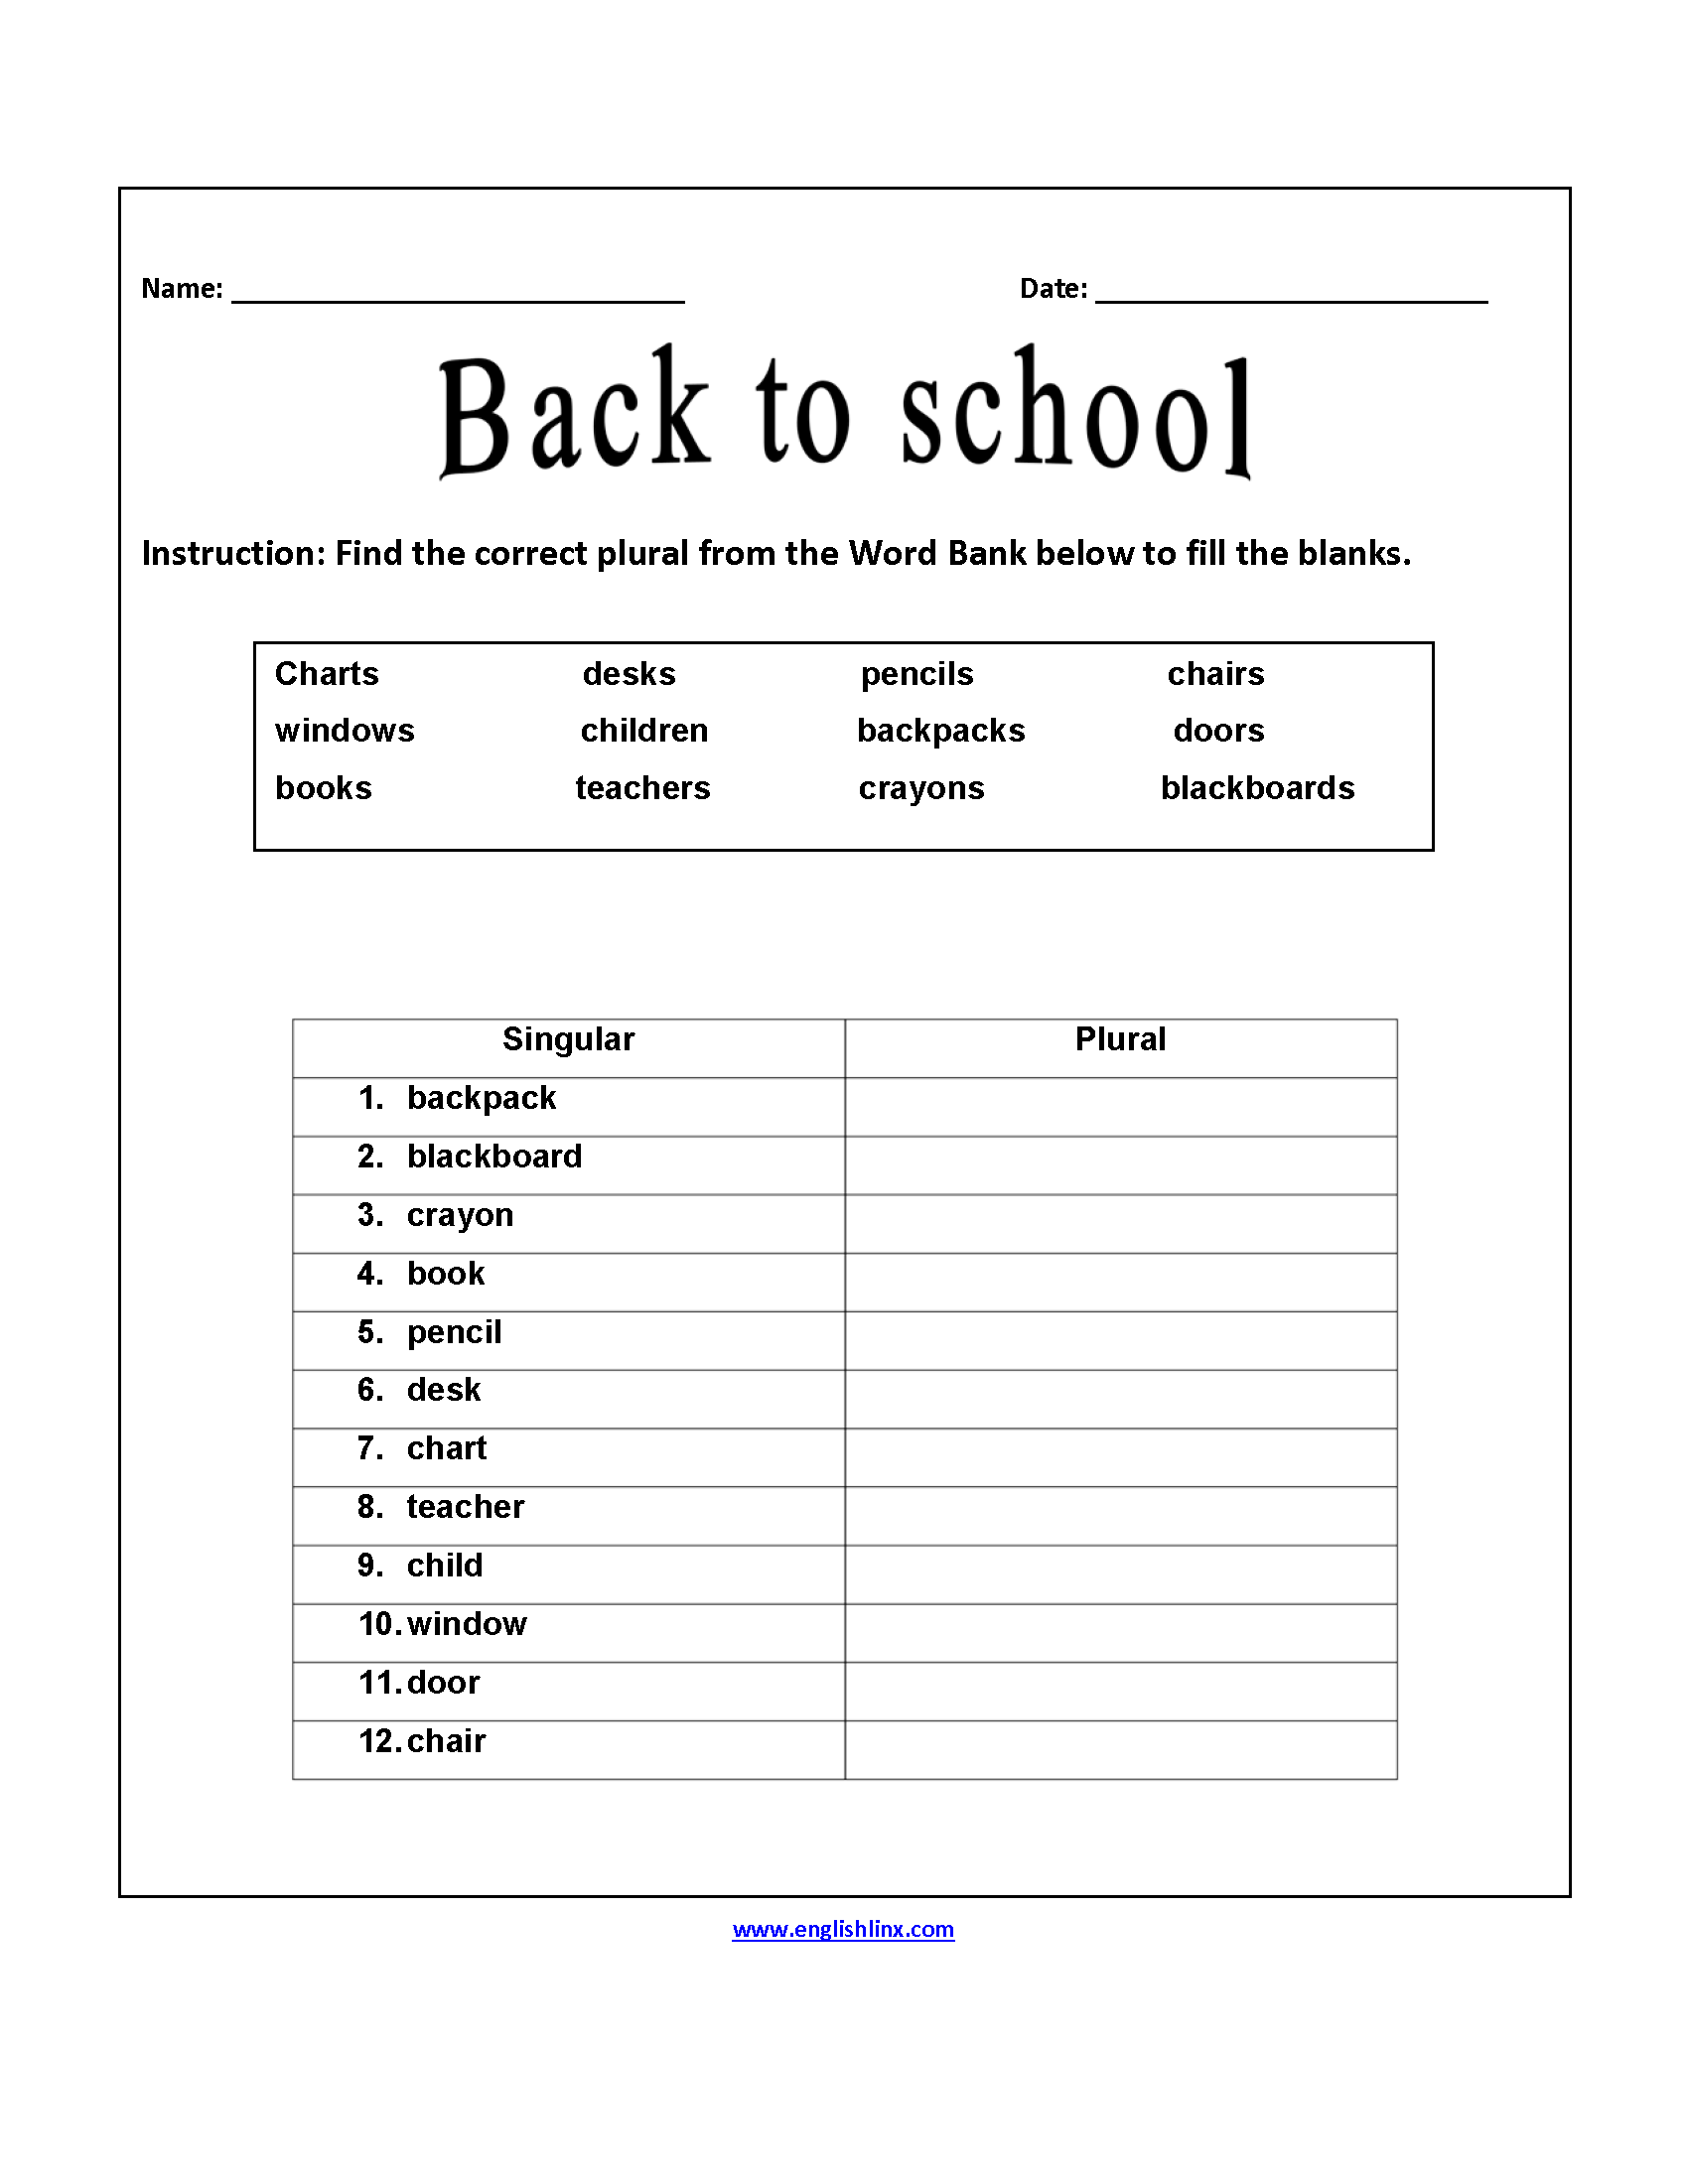 Printables School Worksheet englishlinx com back to school worksheets correct plurals worksheets